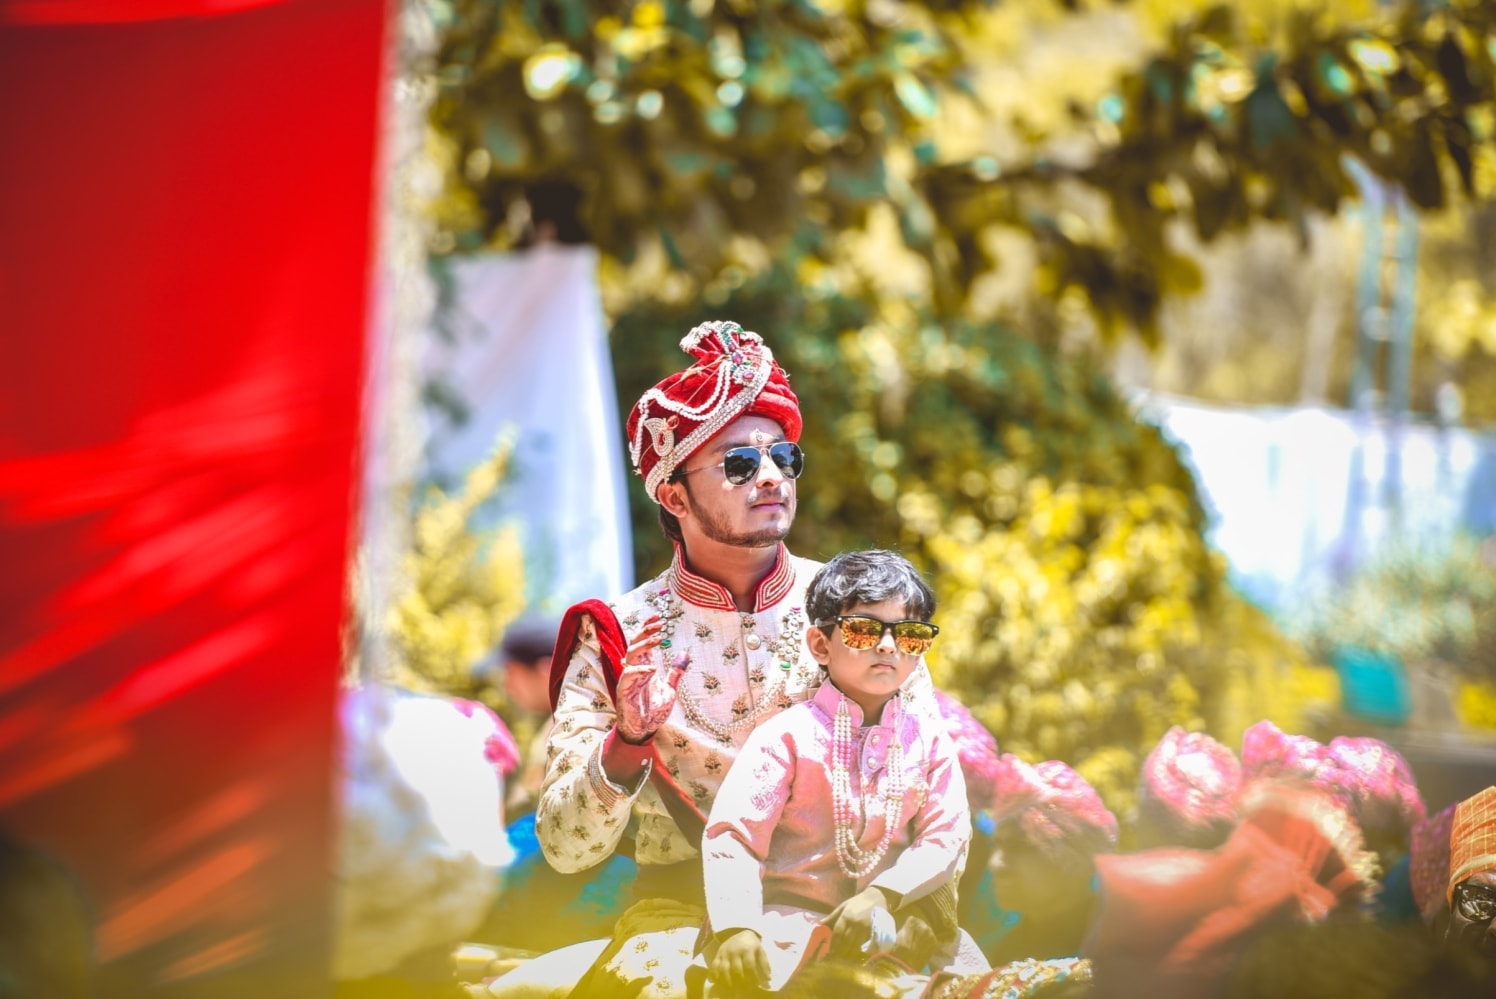 Handsome Groom In Golden Sherwani And Red Silk Turban With Golden Intricate Embroidery by Aniket Kanitkar Wedding-photography Groom-wear-and-accessories | Weddings Photos & Ideas